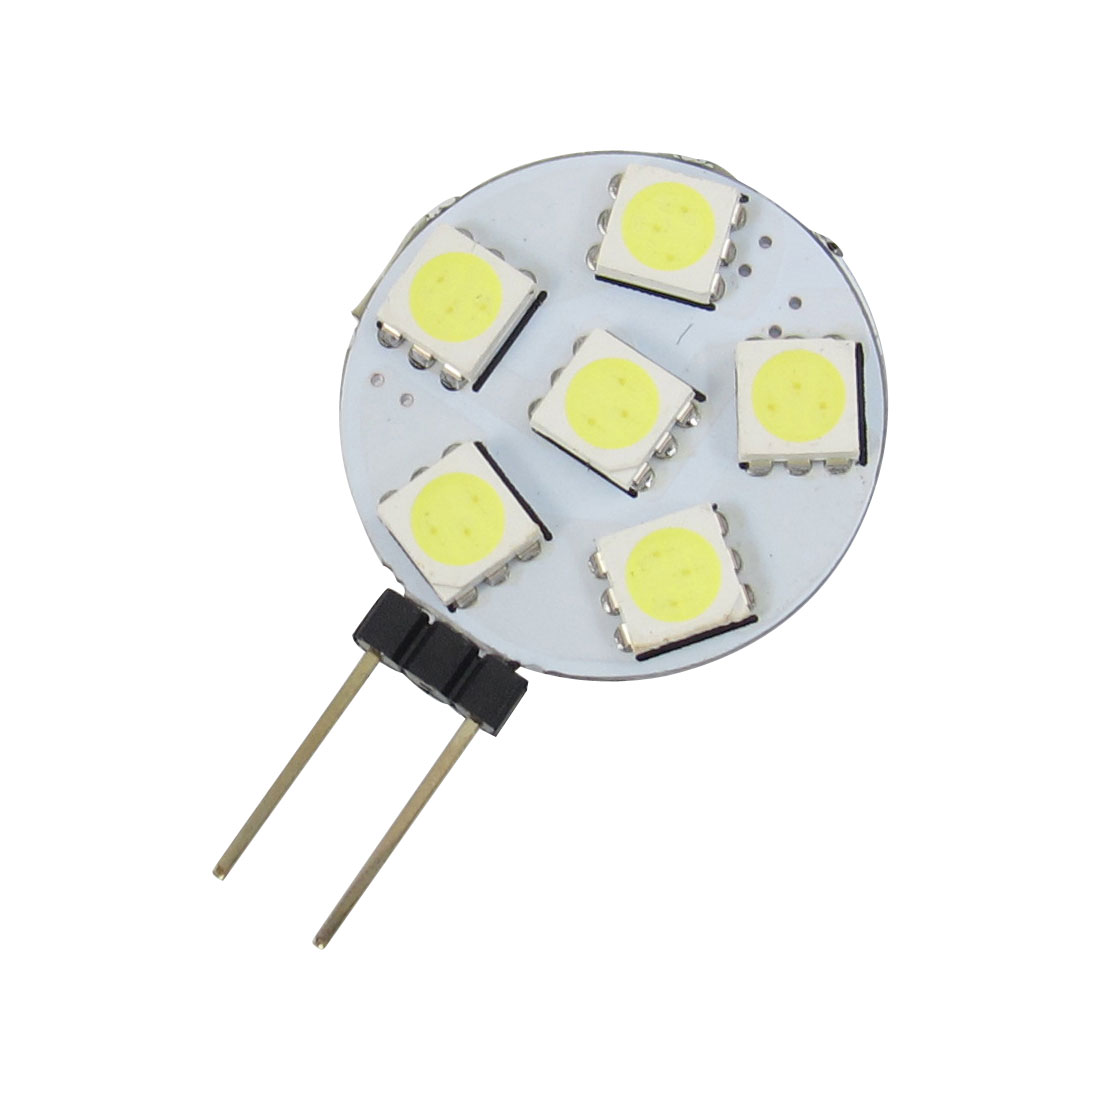 White G4 6 5050 SMD LED Side Pin Light Lamp Bulb for Car Auto